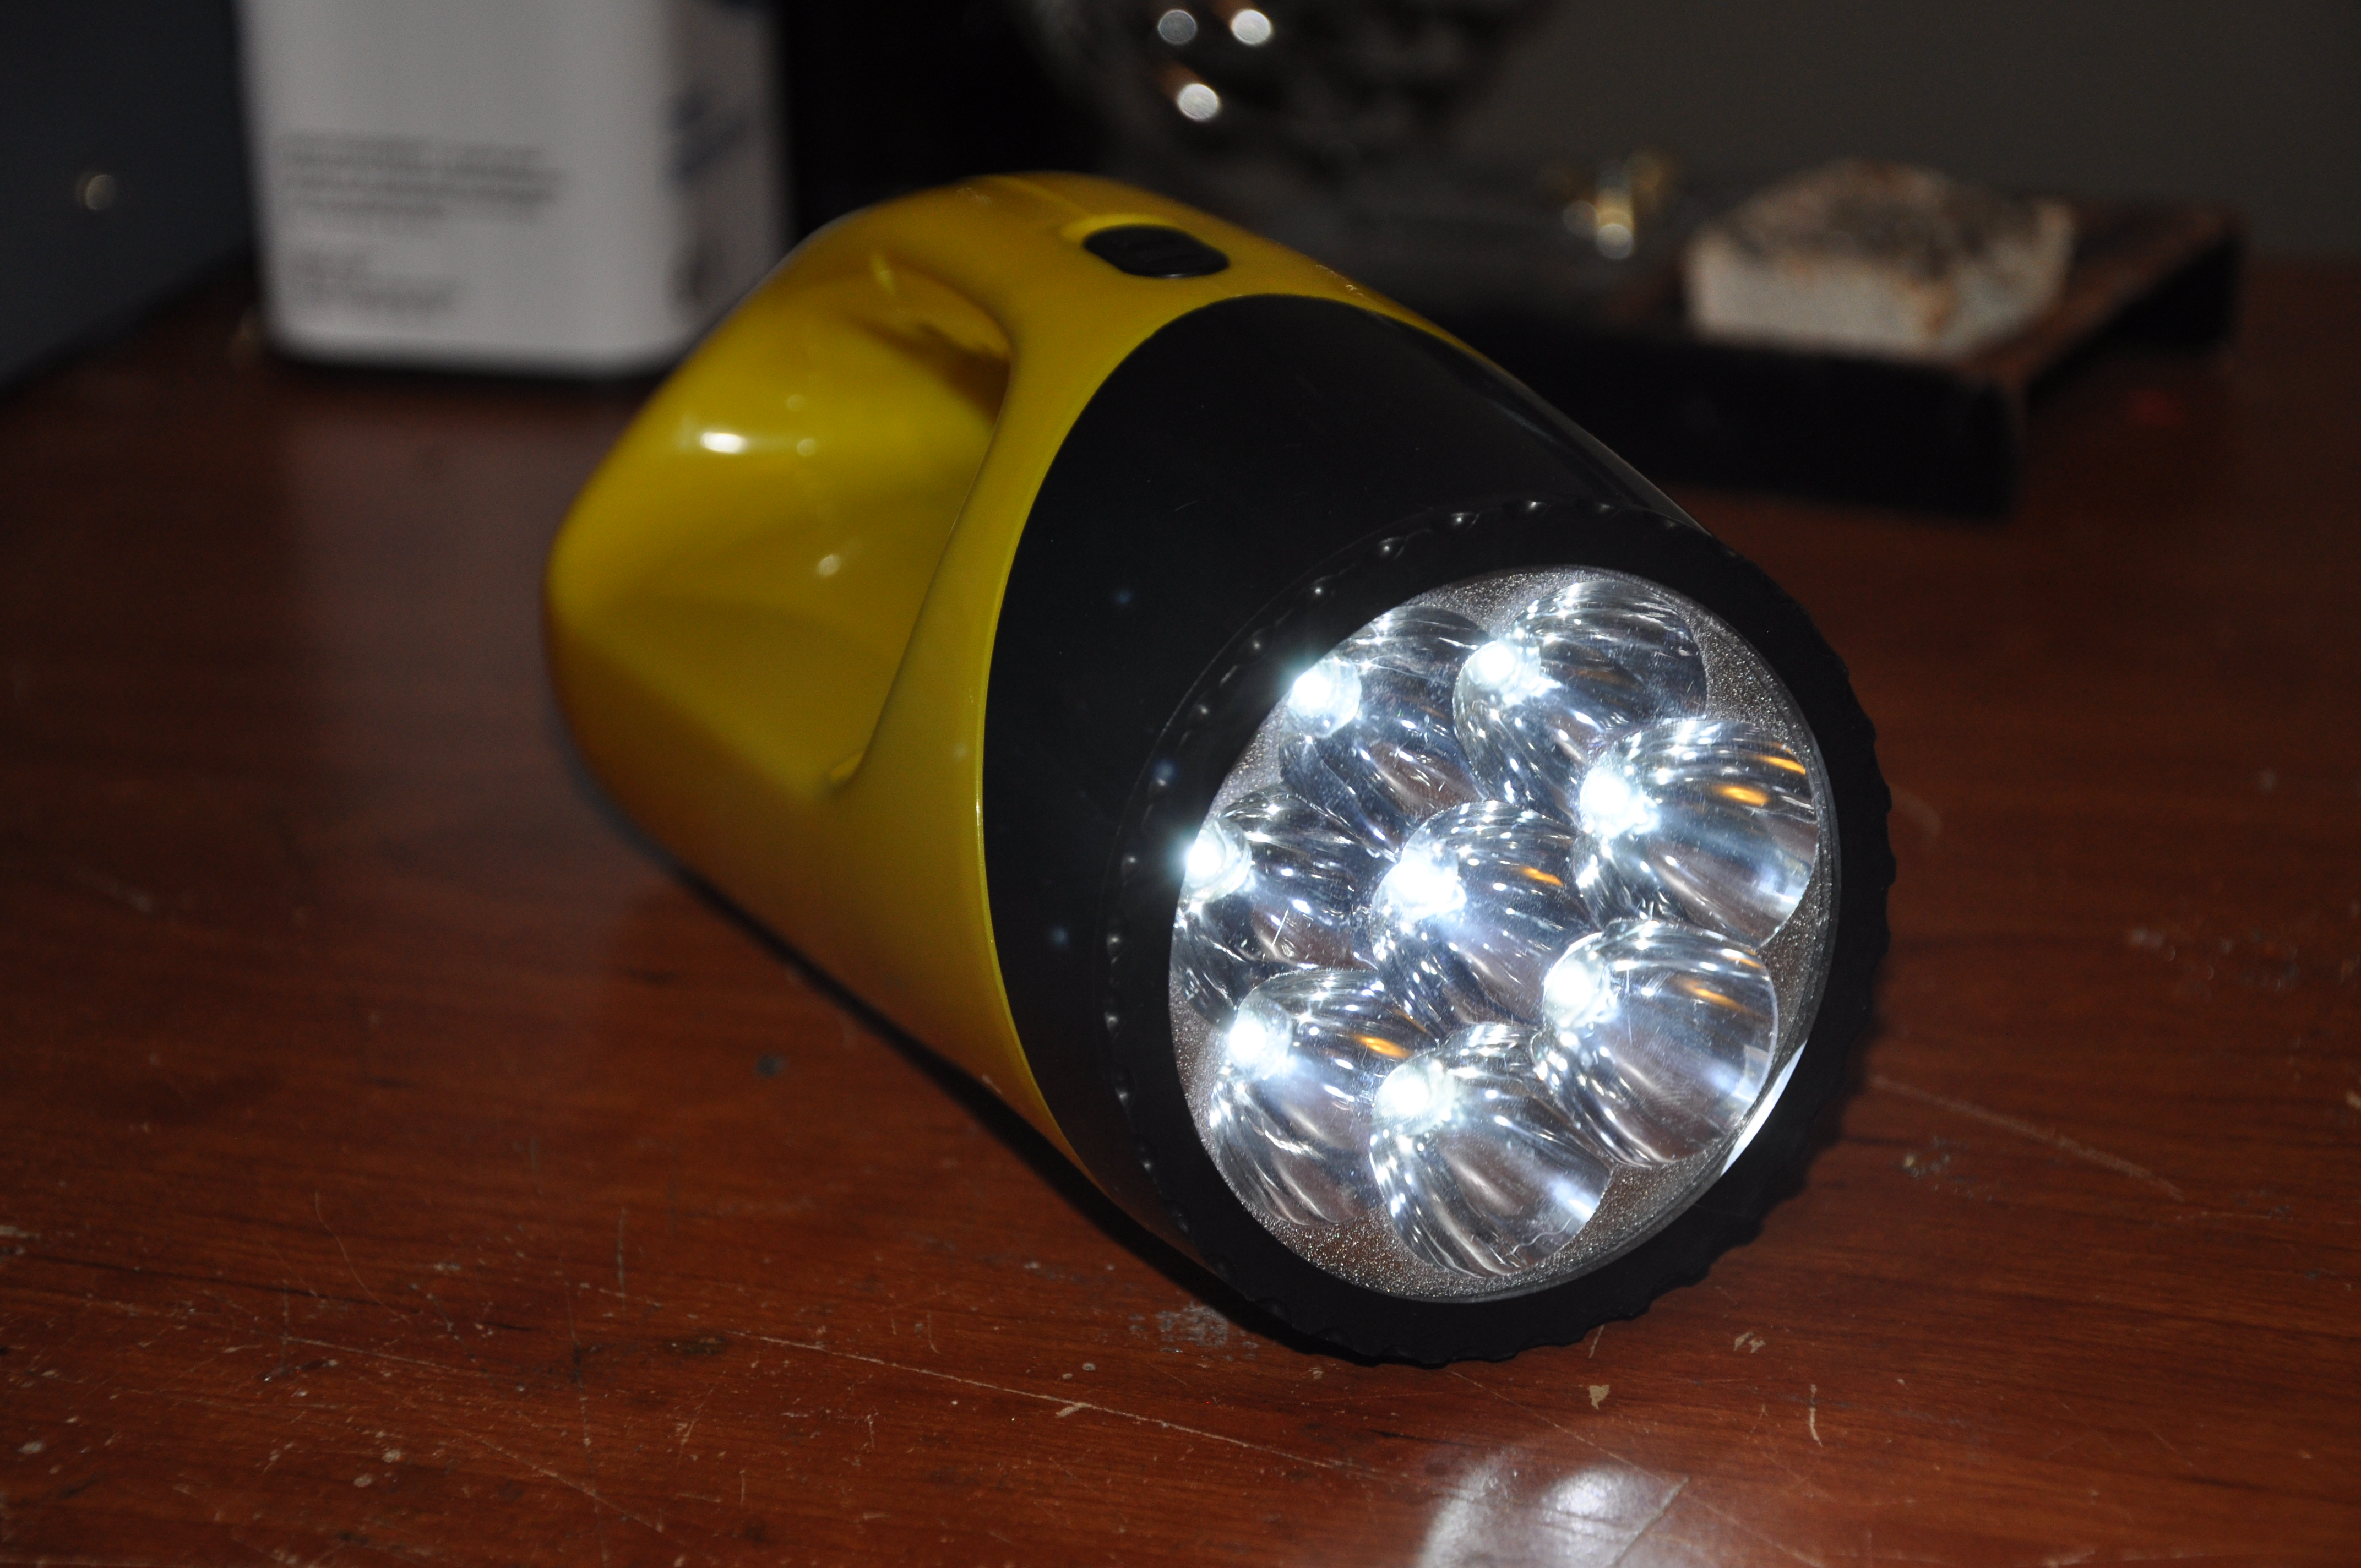 The EXTREMELY EASY VERSION of the Super Capacitor Flash light